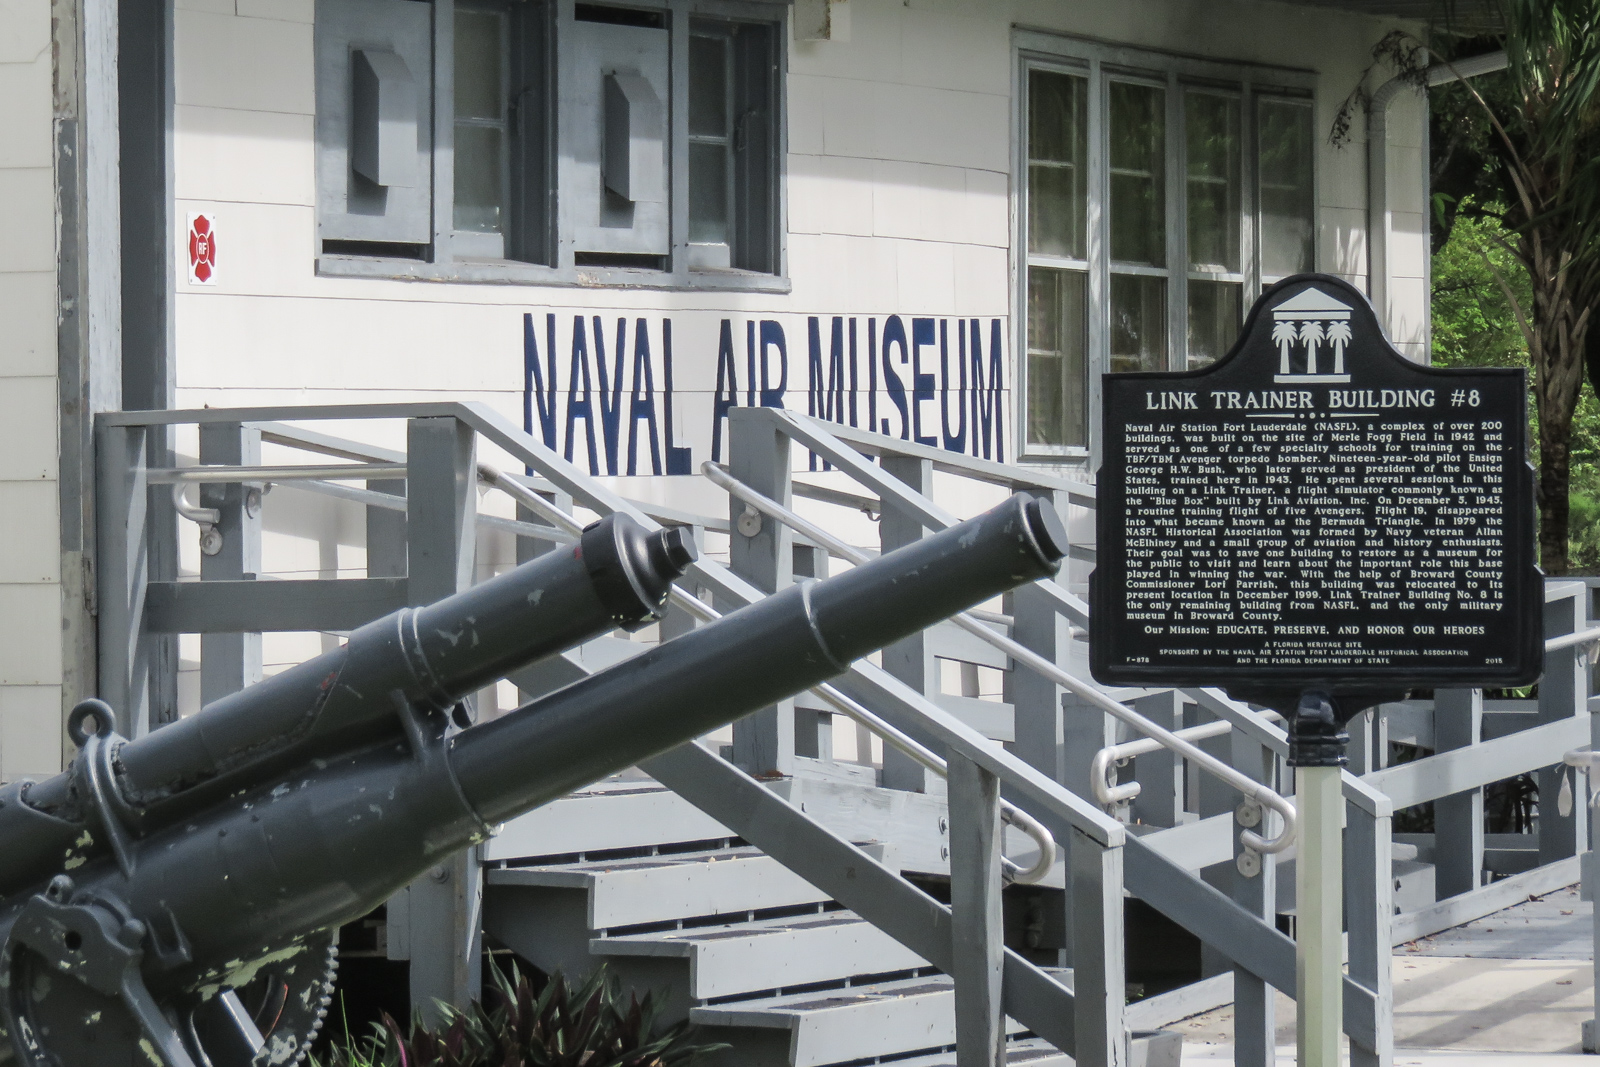 Top things to do in Fort Lauderdale: Naval Air Museum. Discover the best of Fort Lauderdale on a Fort Lauderdale tour.